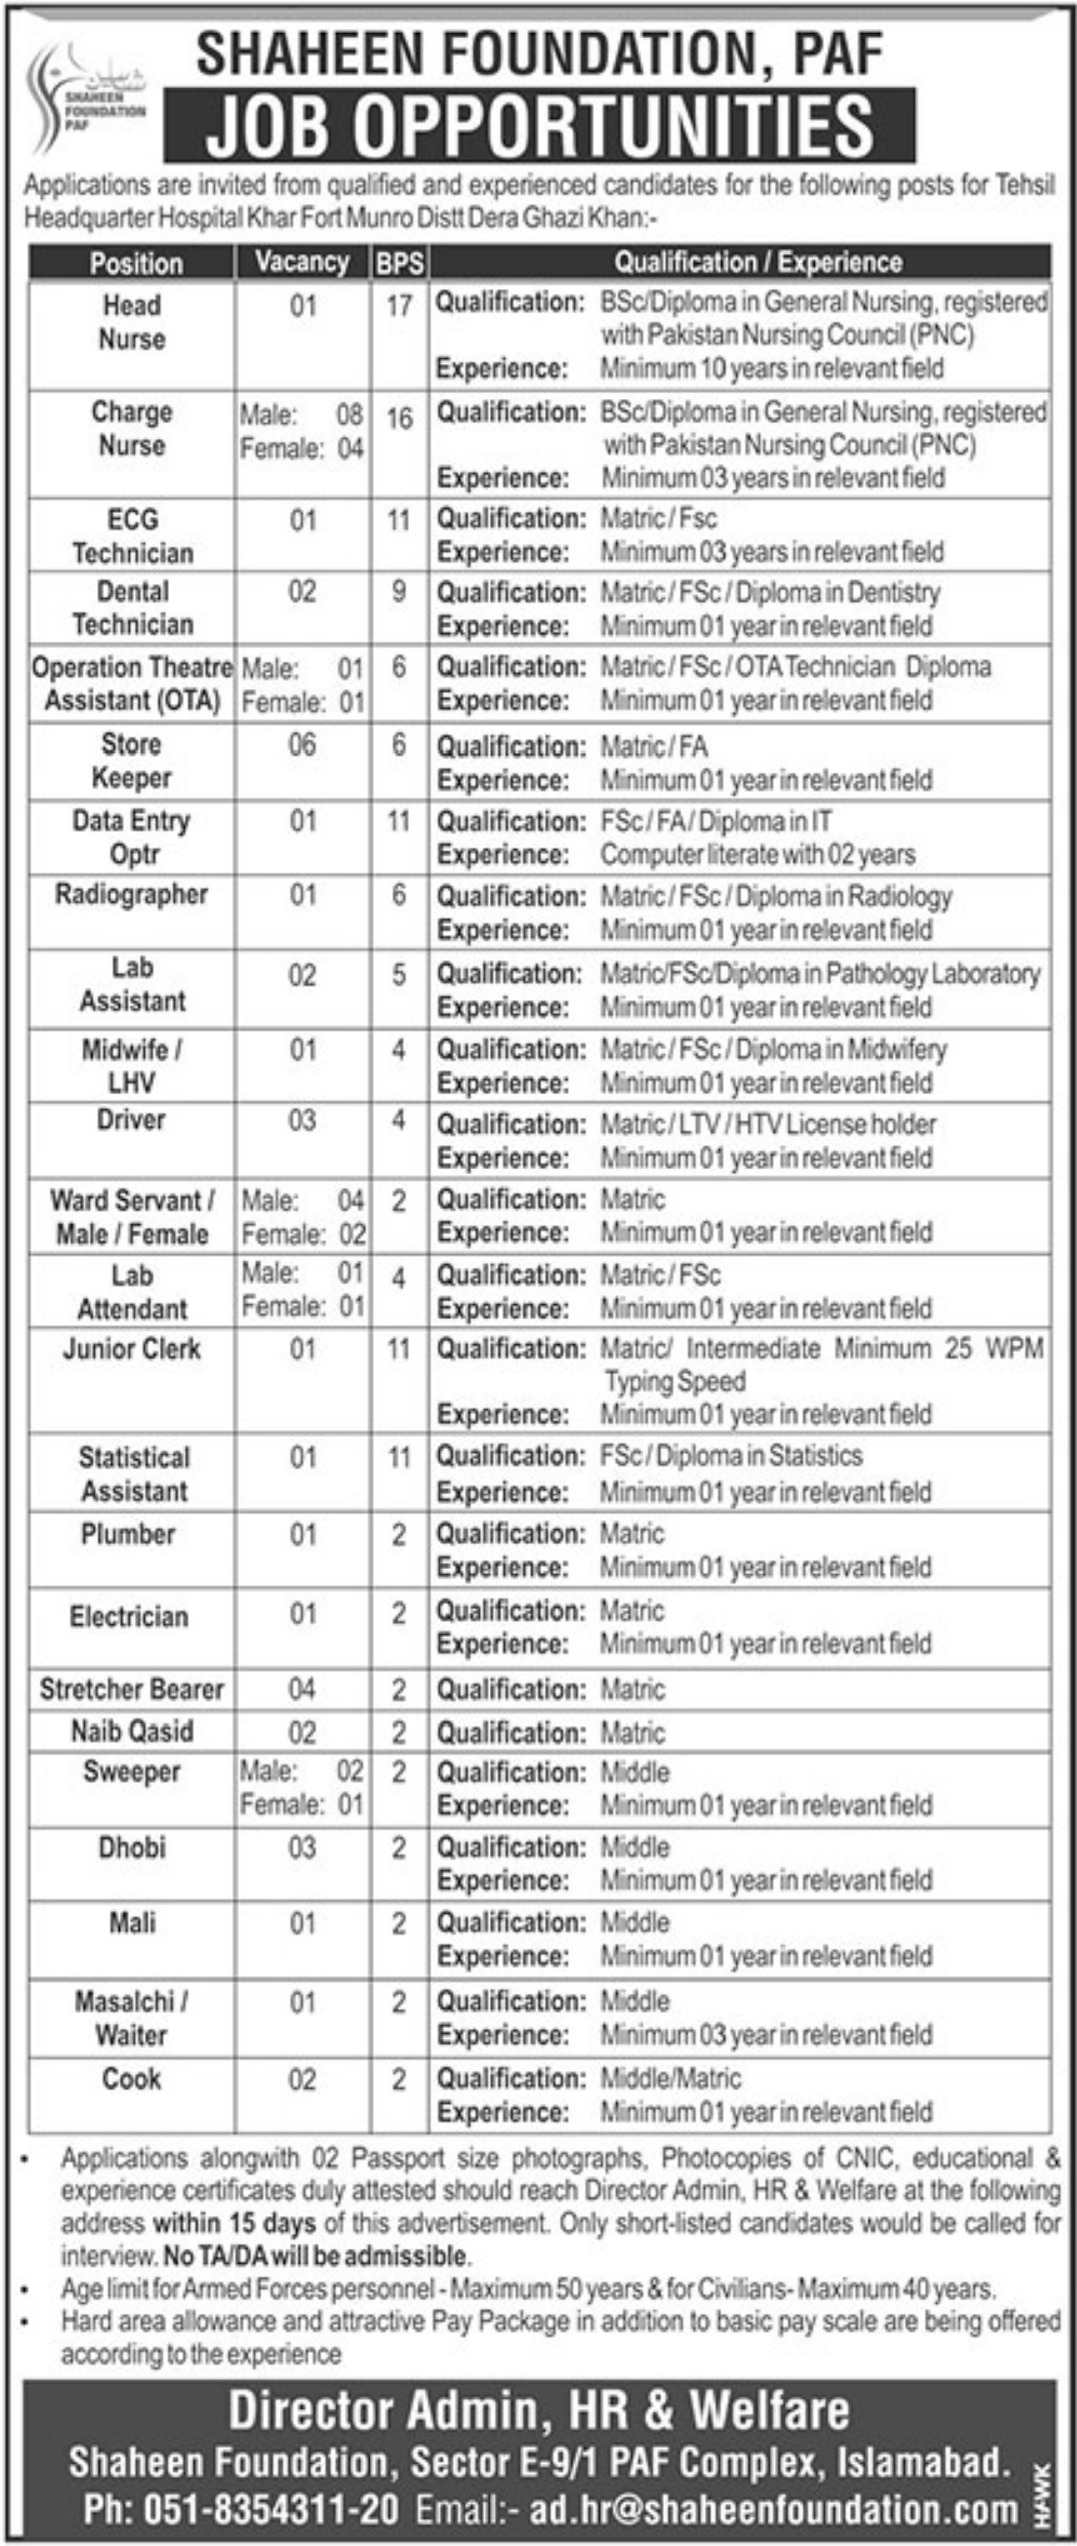 Shaheen Foundation PAF Jobs 2019 Pakistan